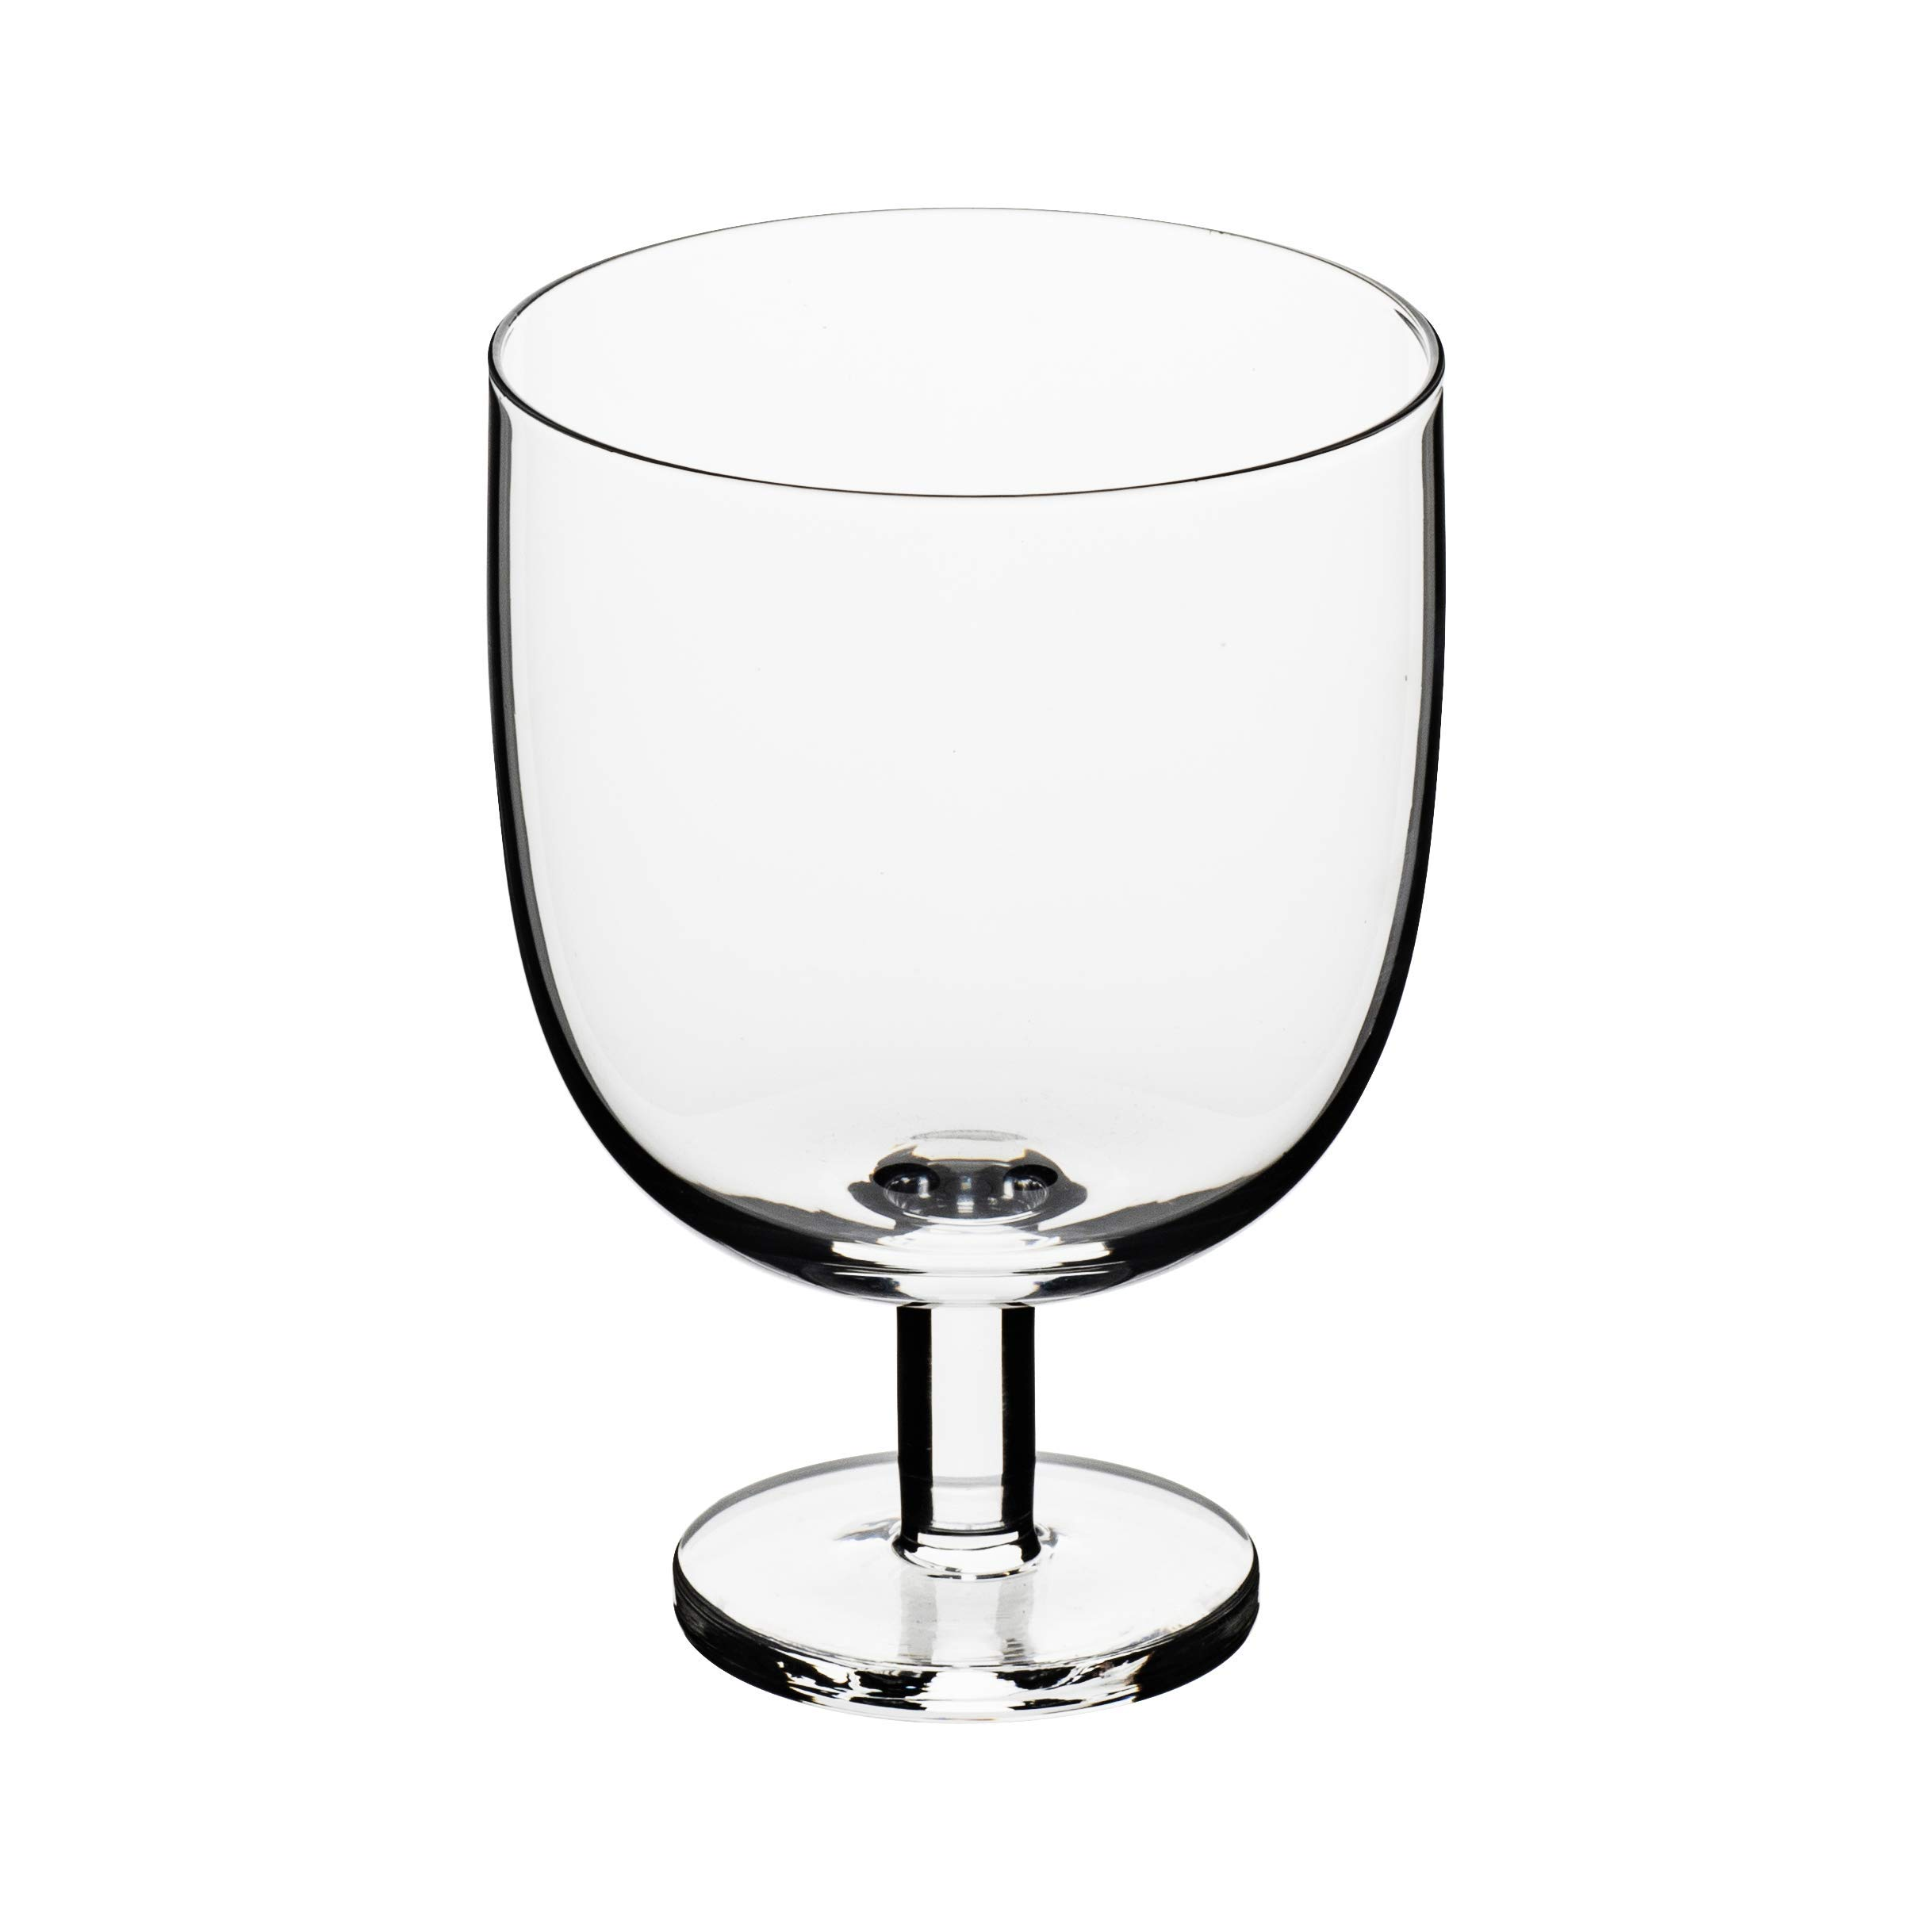 Degrenne 234149 Set of 6 Empileo Wine Glasses 26 cl